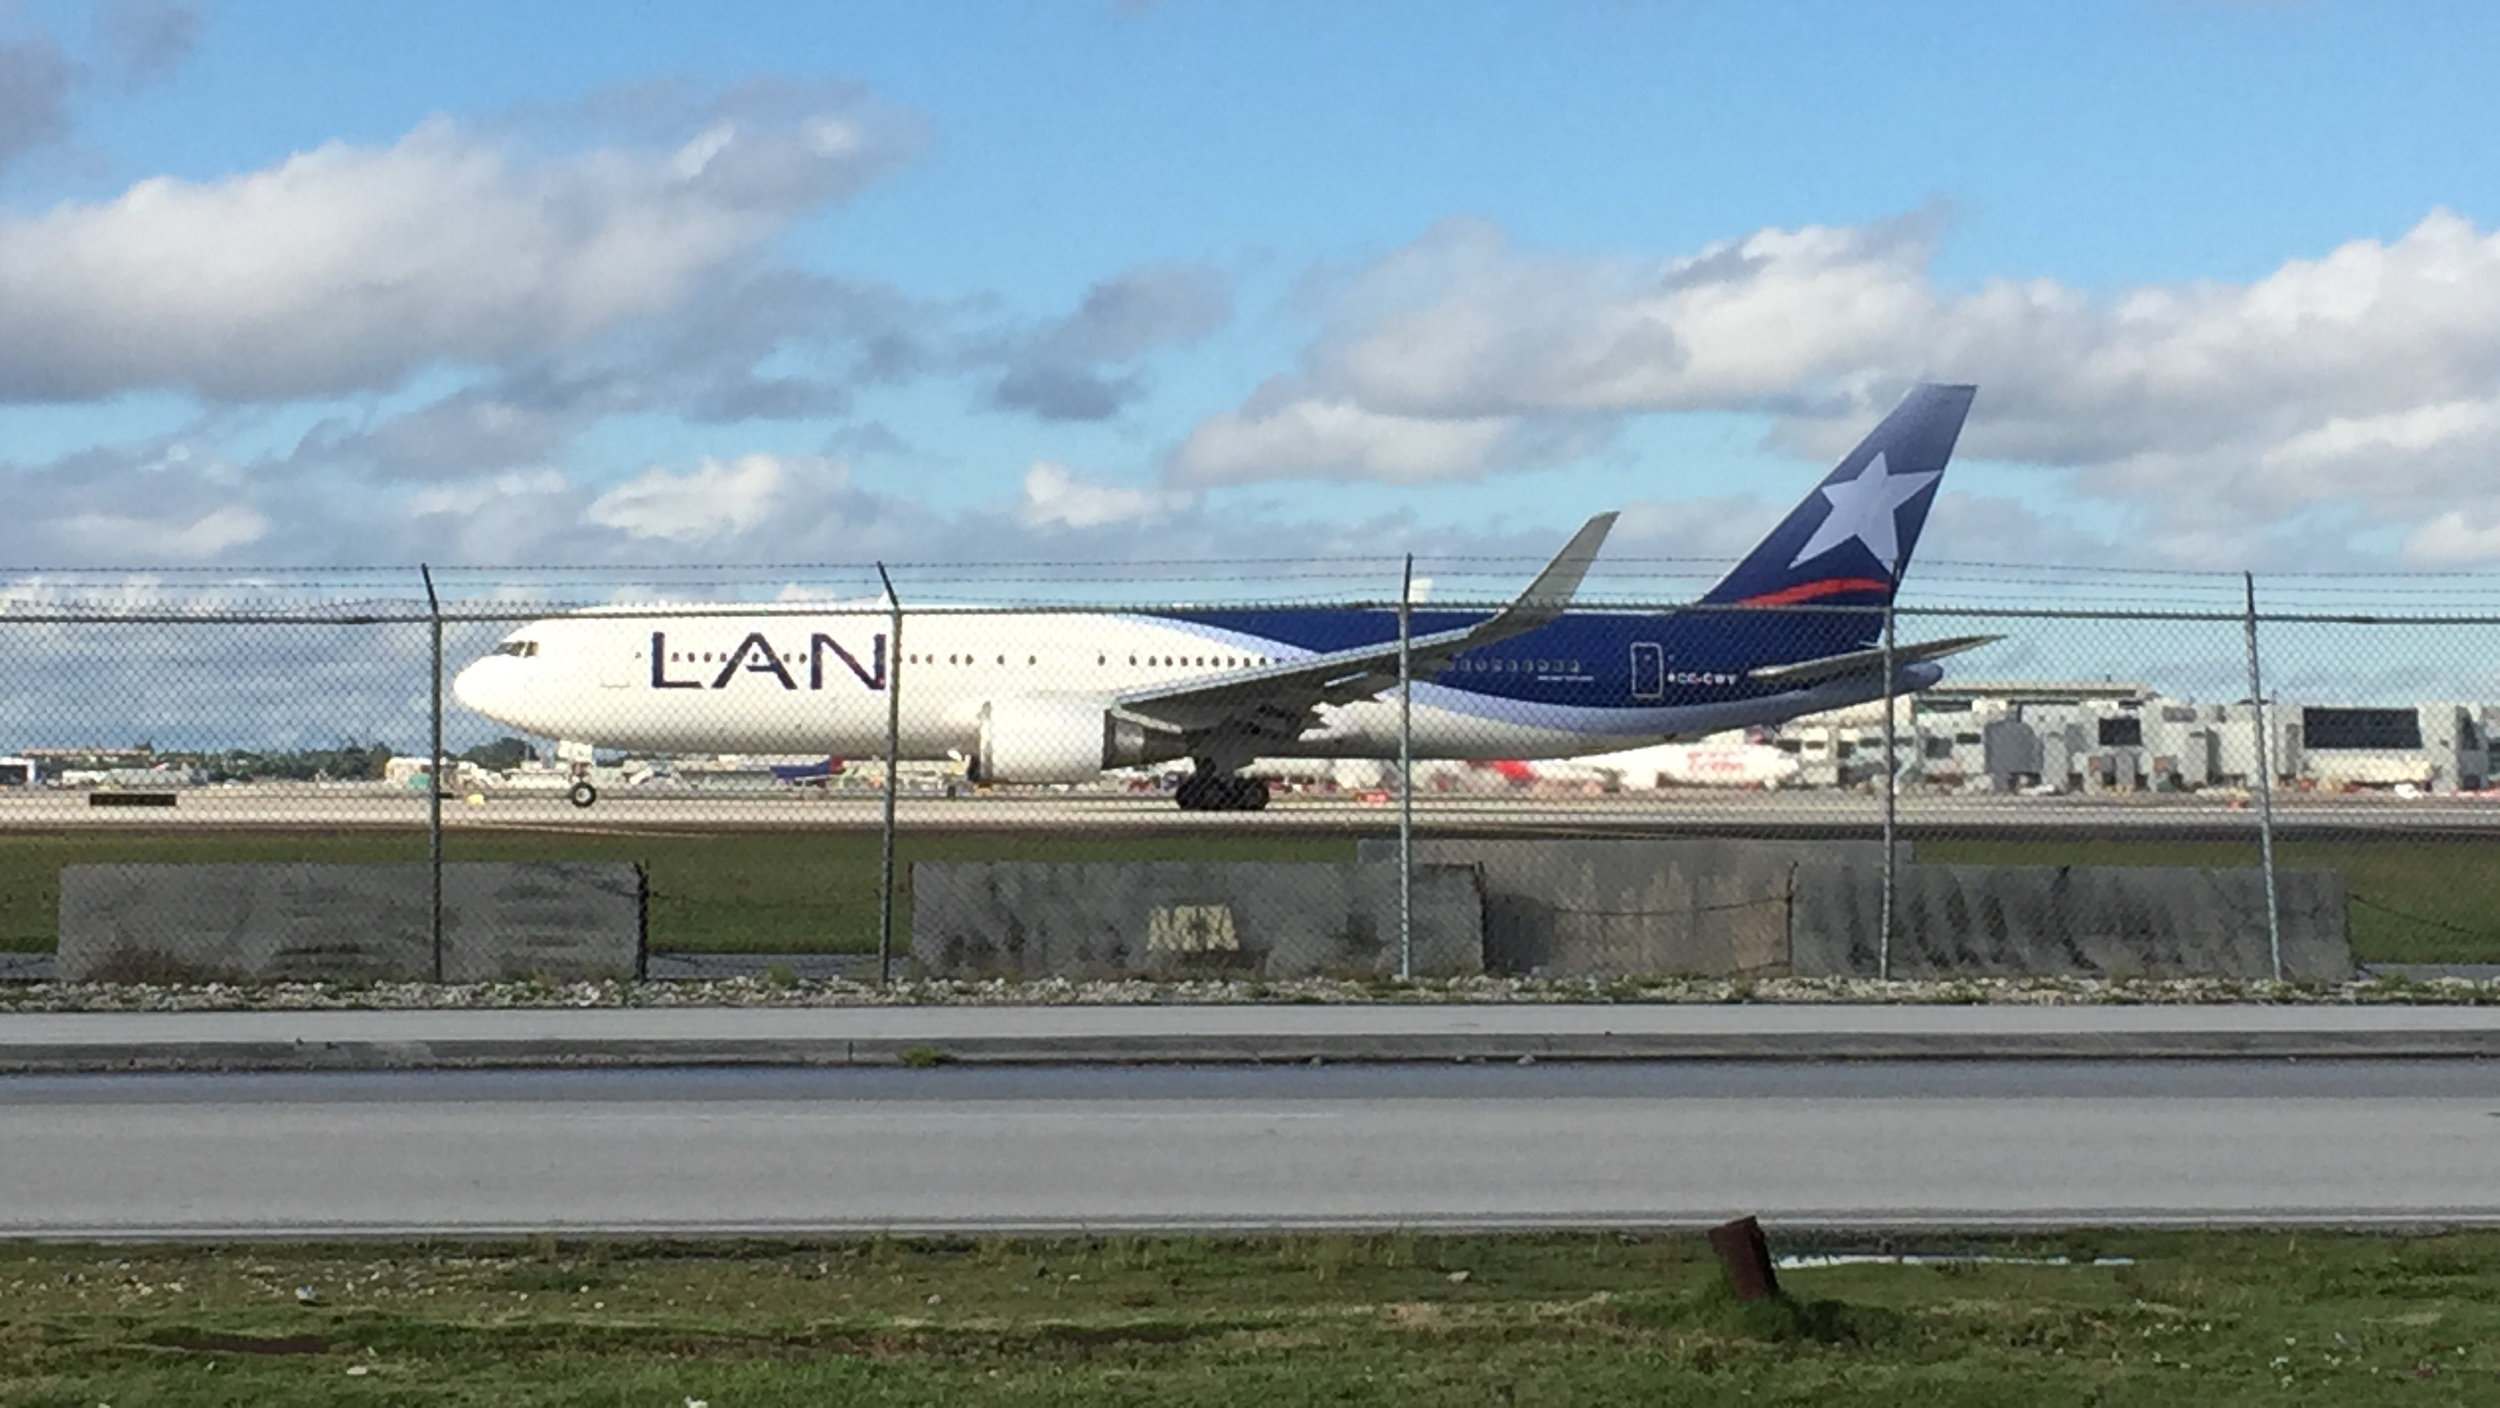 A LAN Airlines B767-300 on its takeoff roll